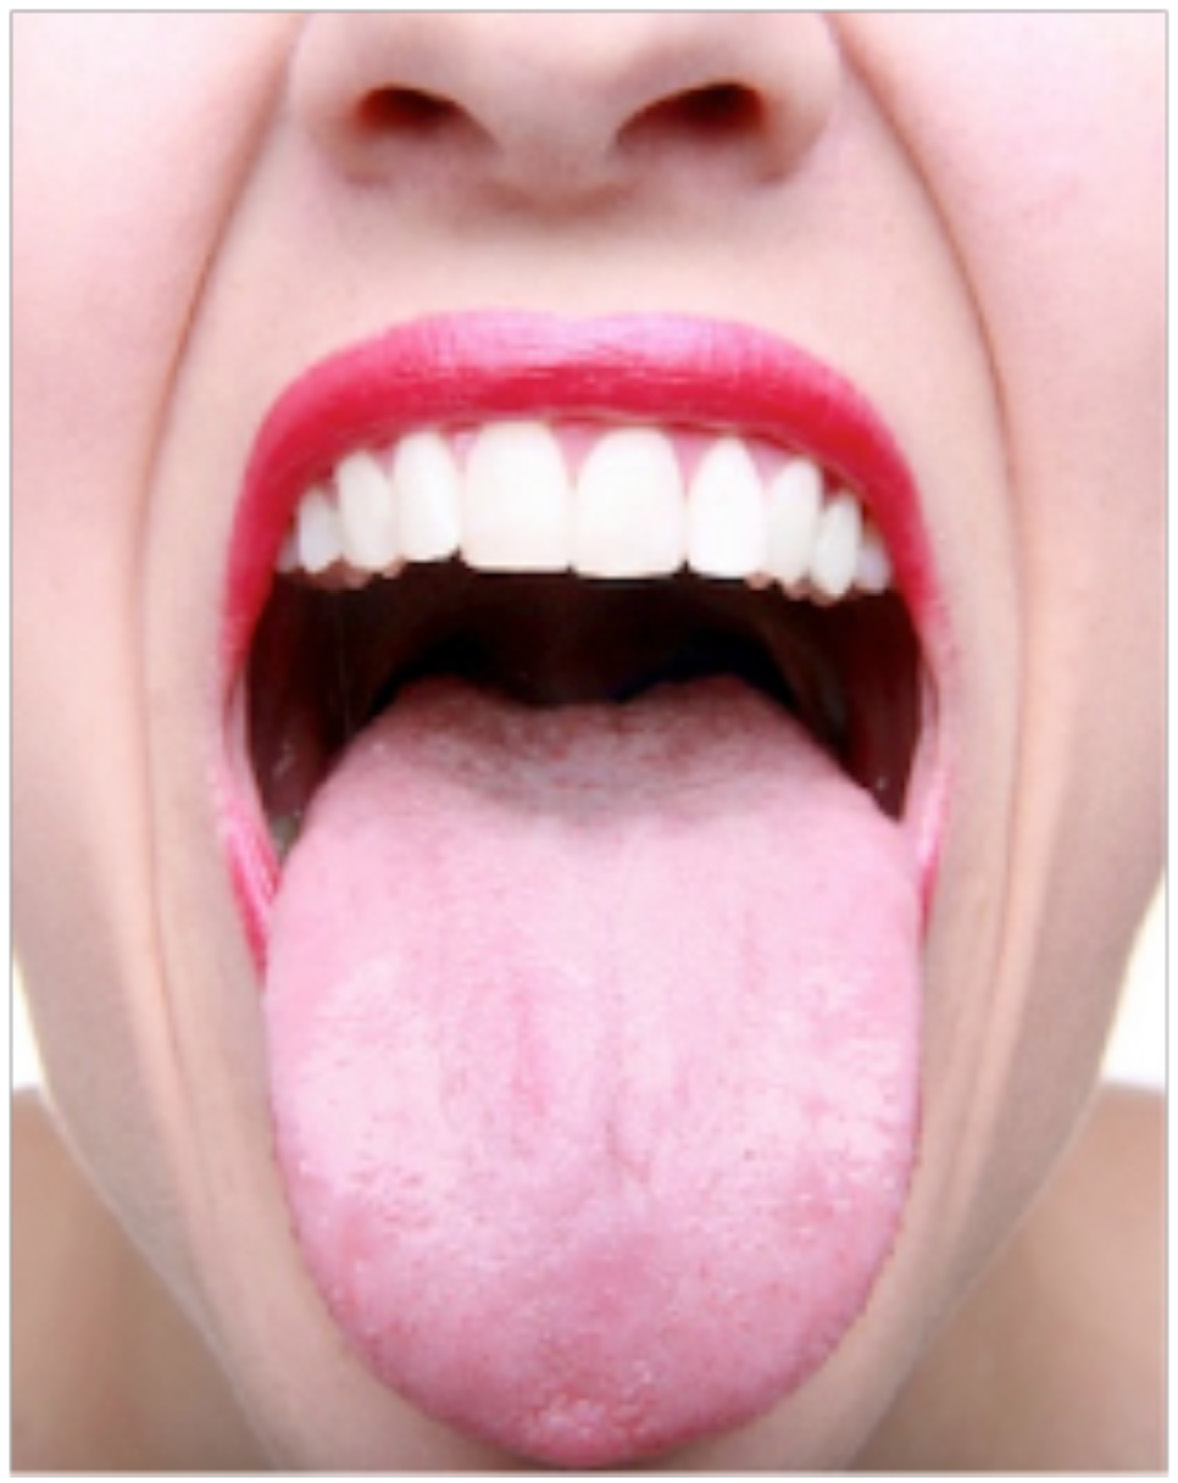 pictures of mouth and tongue disease entusacom - 637×754